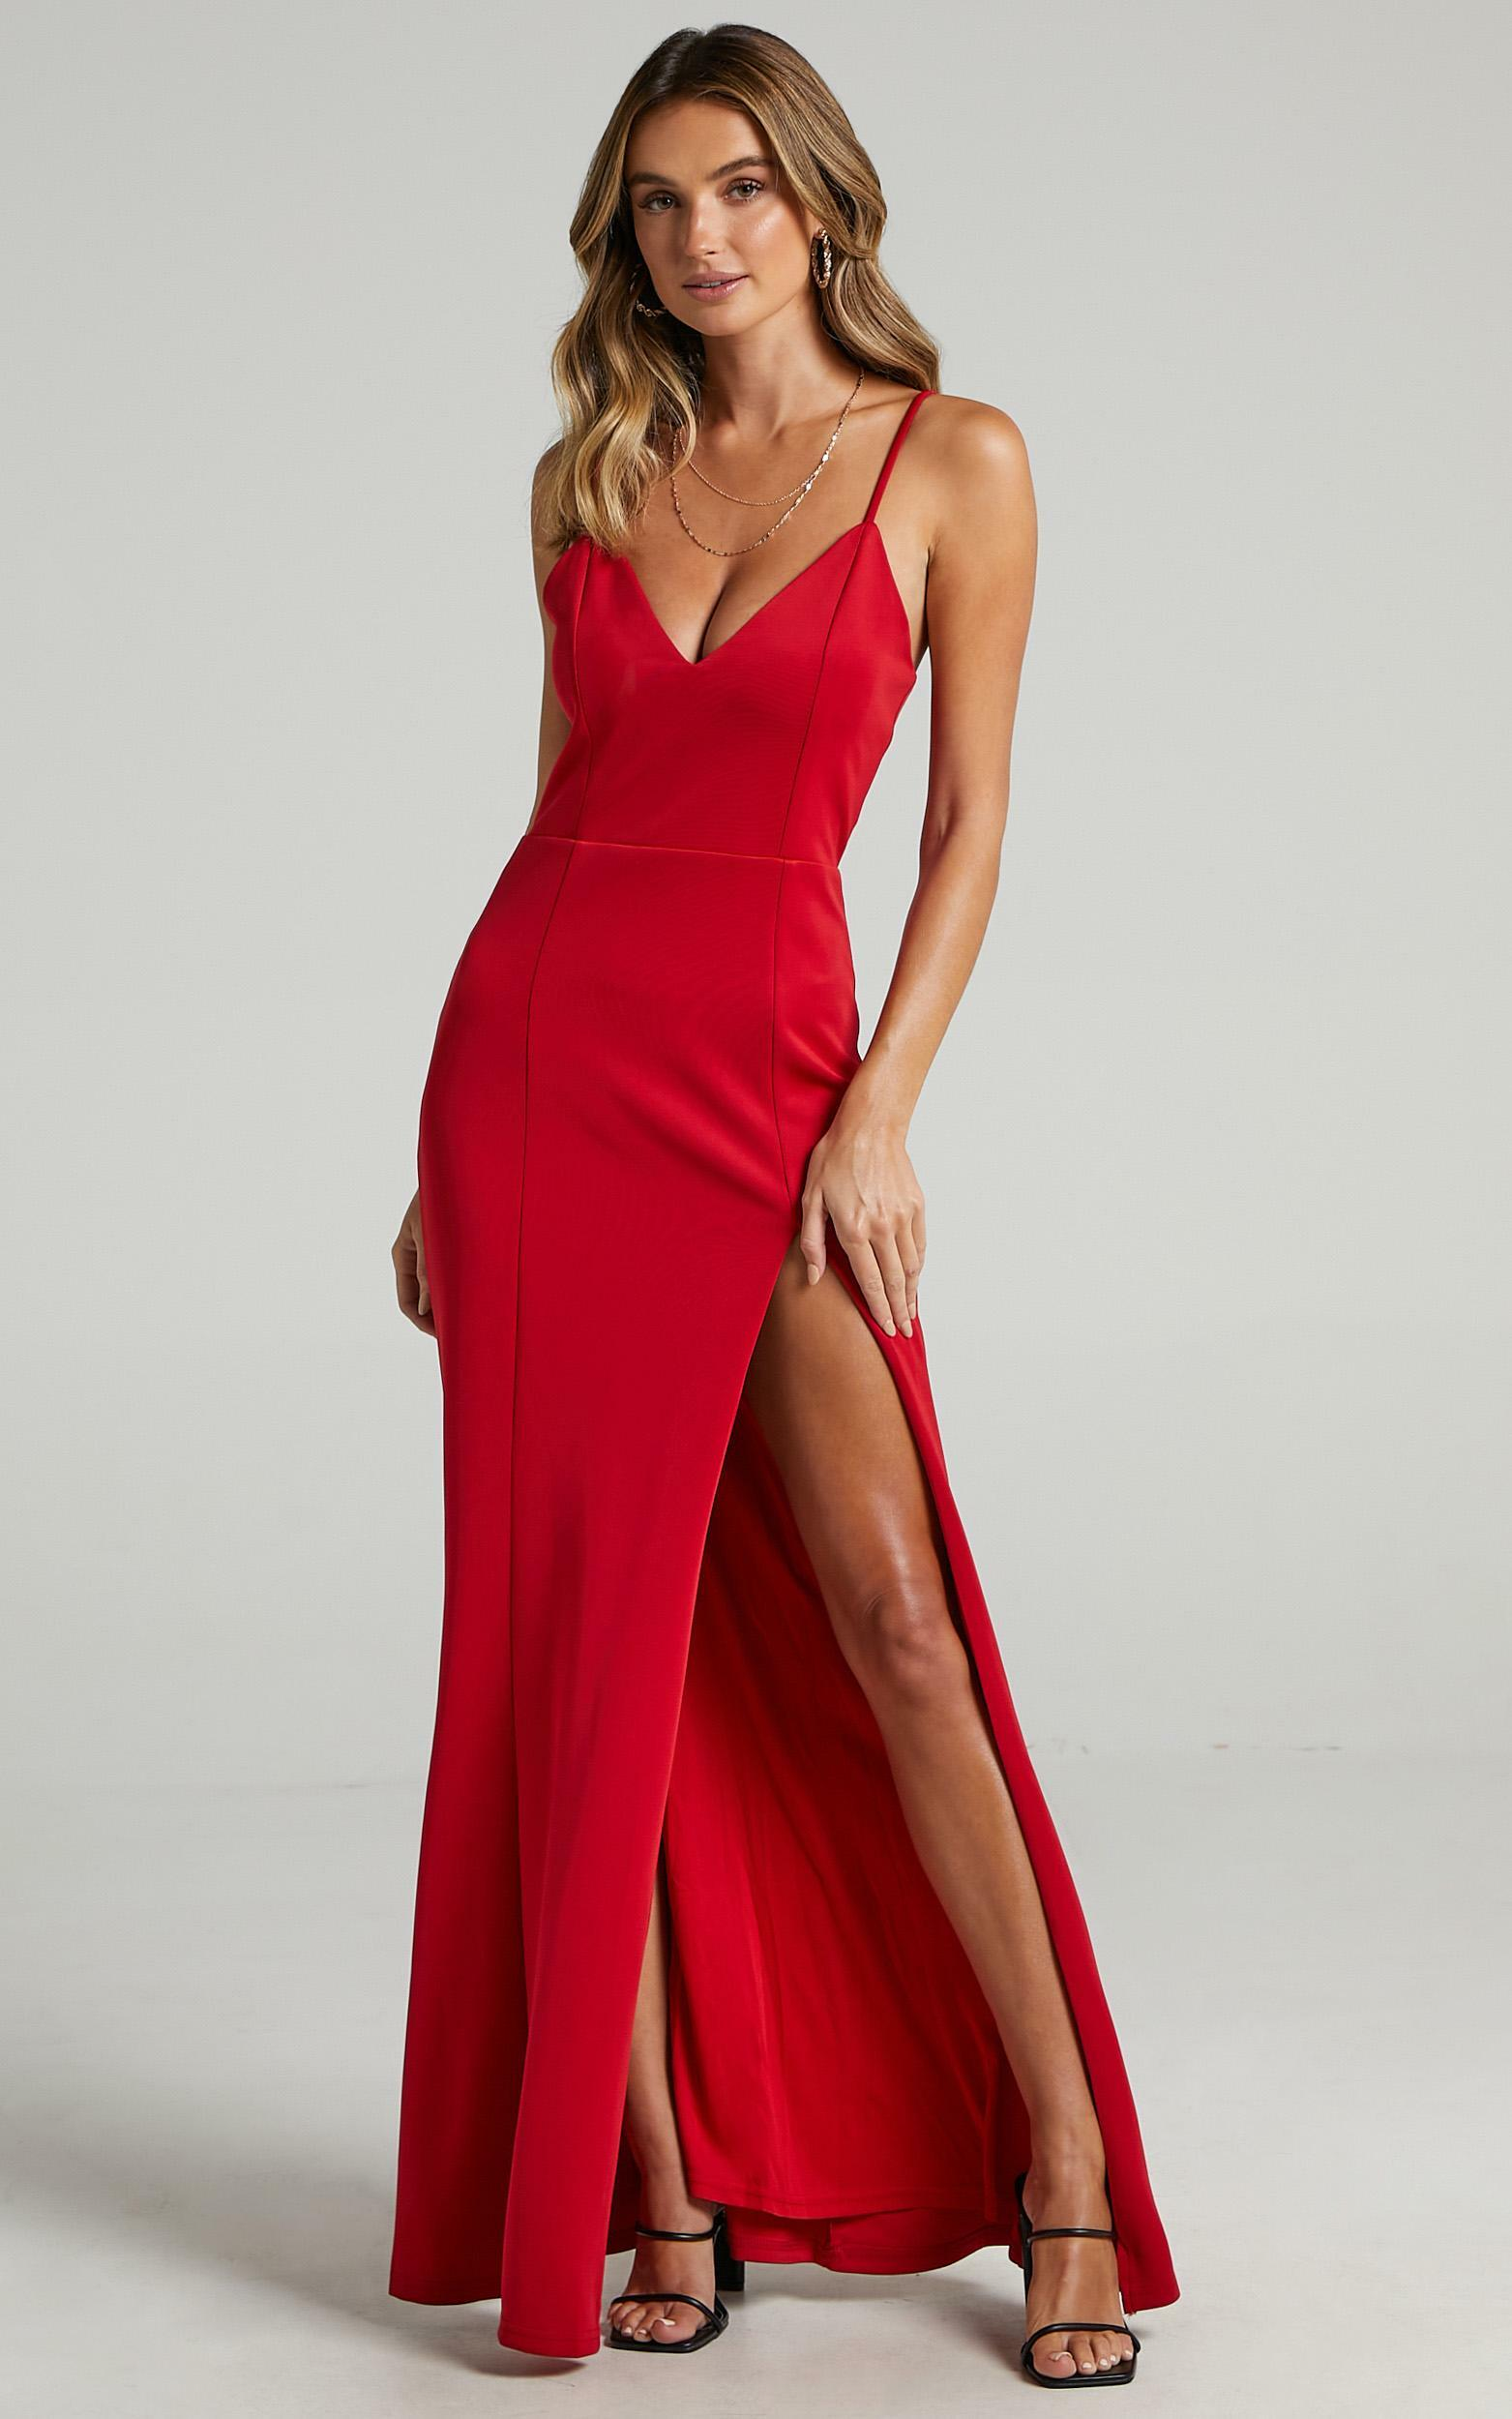 Dare To Dream Split Maxi Dress in Red - 20, RED8, hi-res image number null